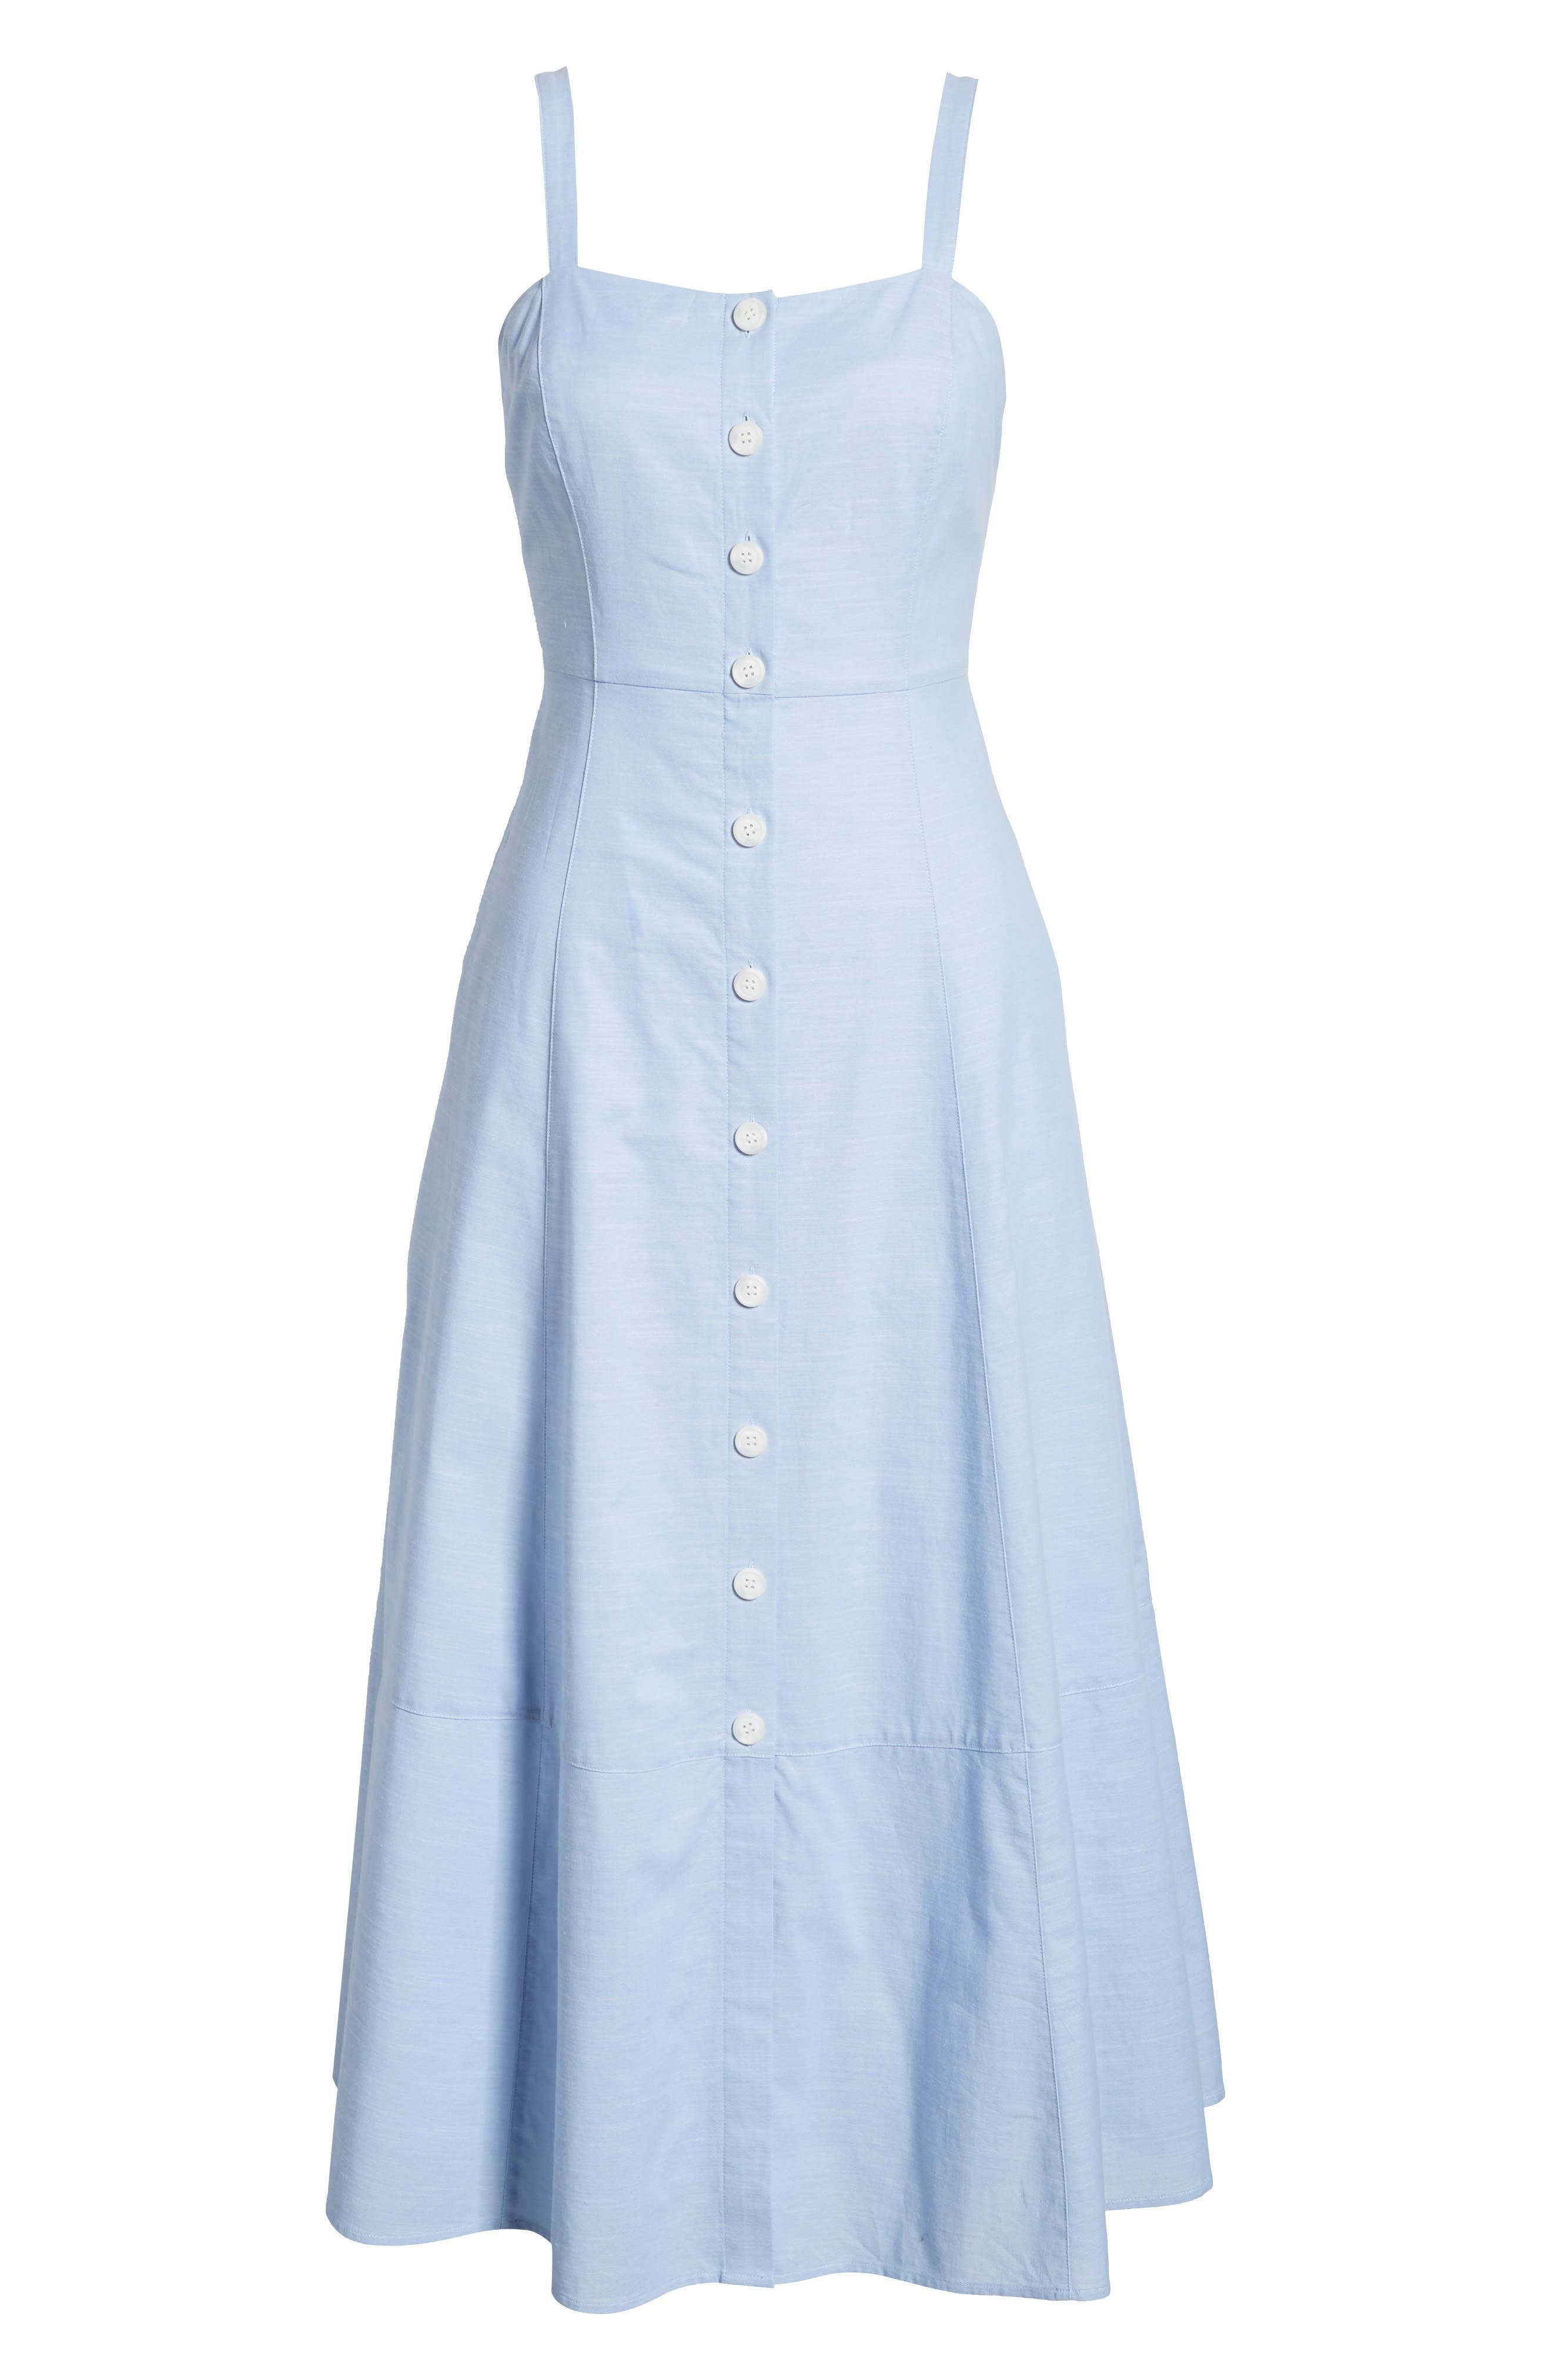 Button Front Chambray Cotton Dress,                             Alternate thumbnail 7, color,                             Chambray